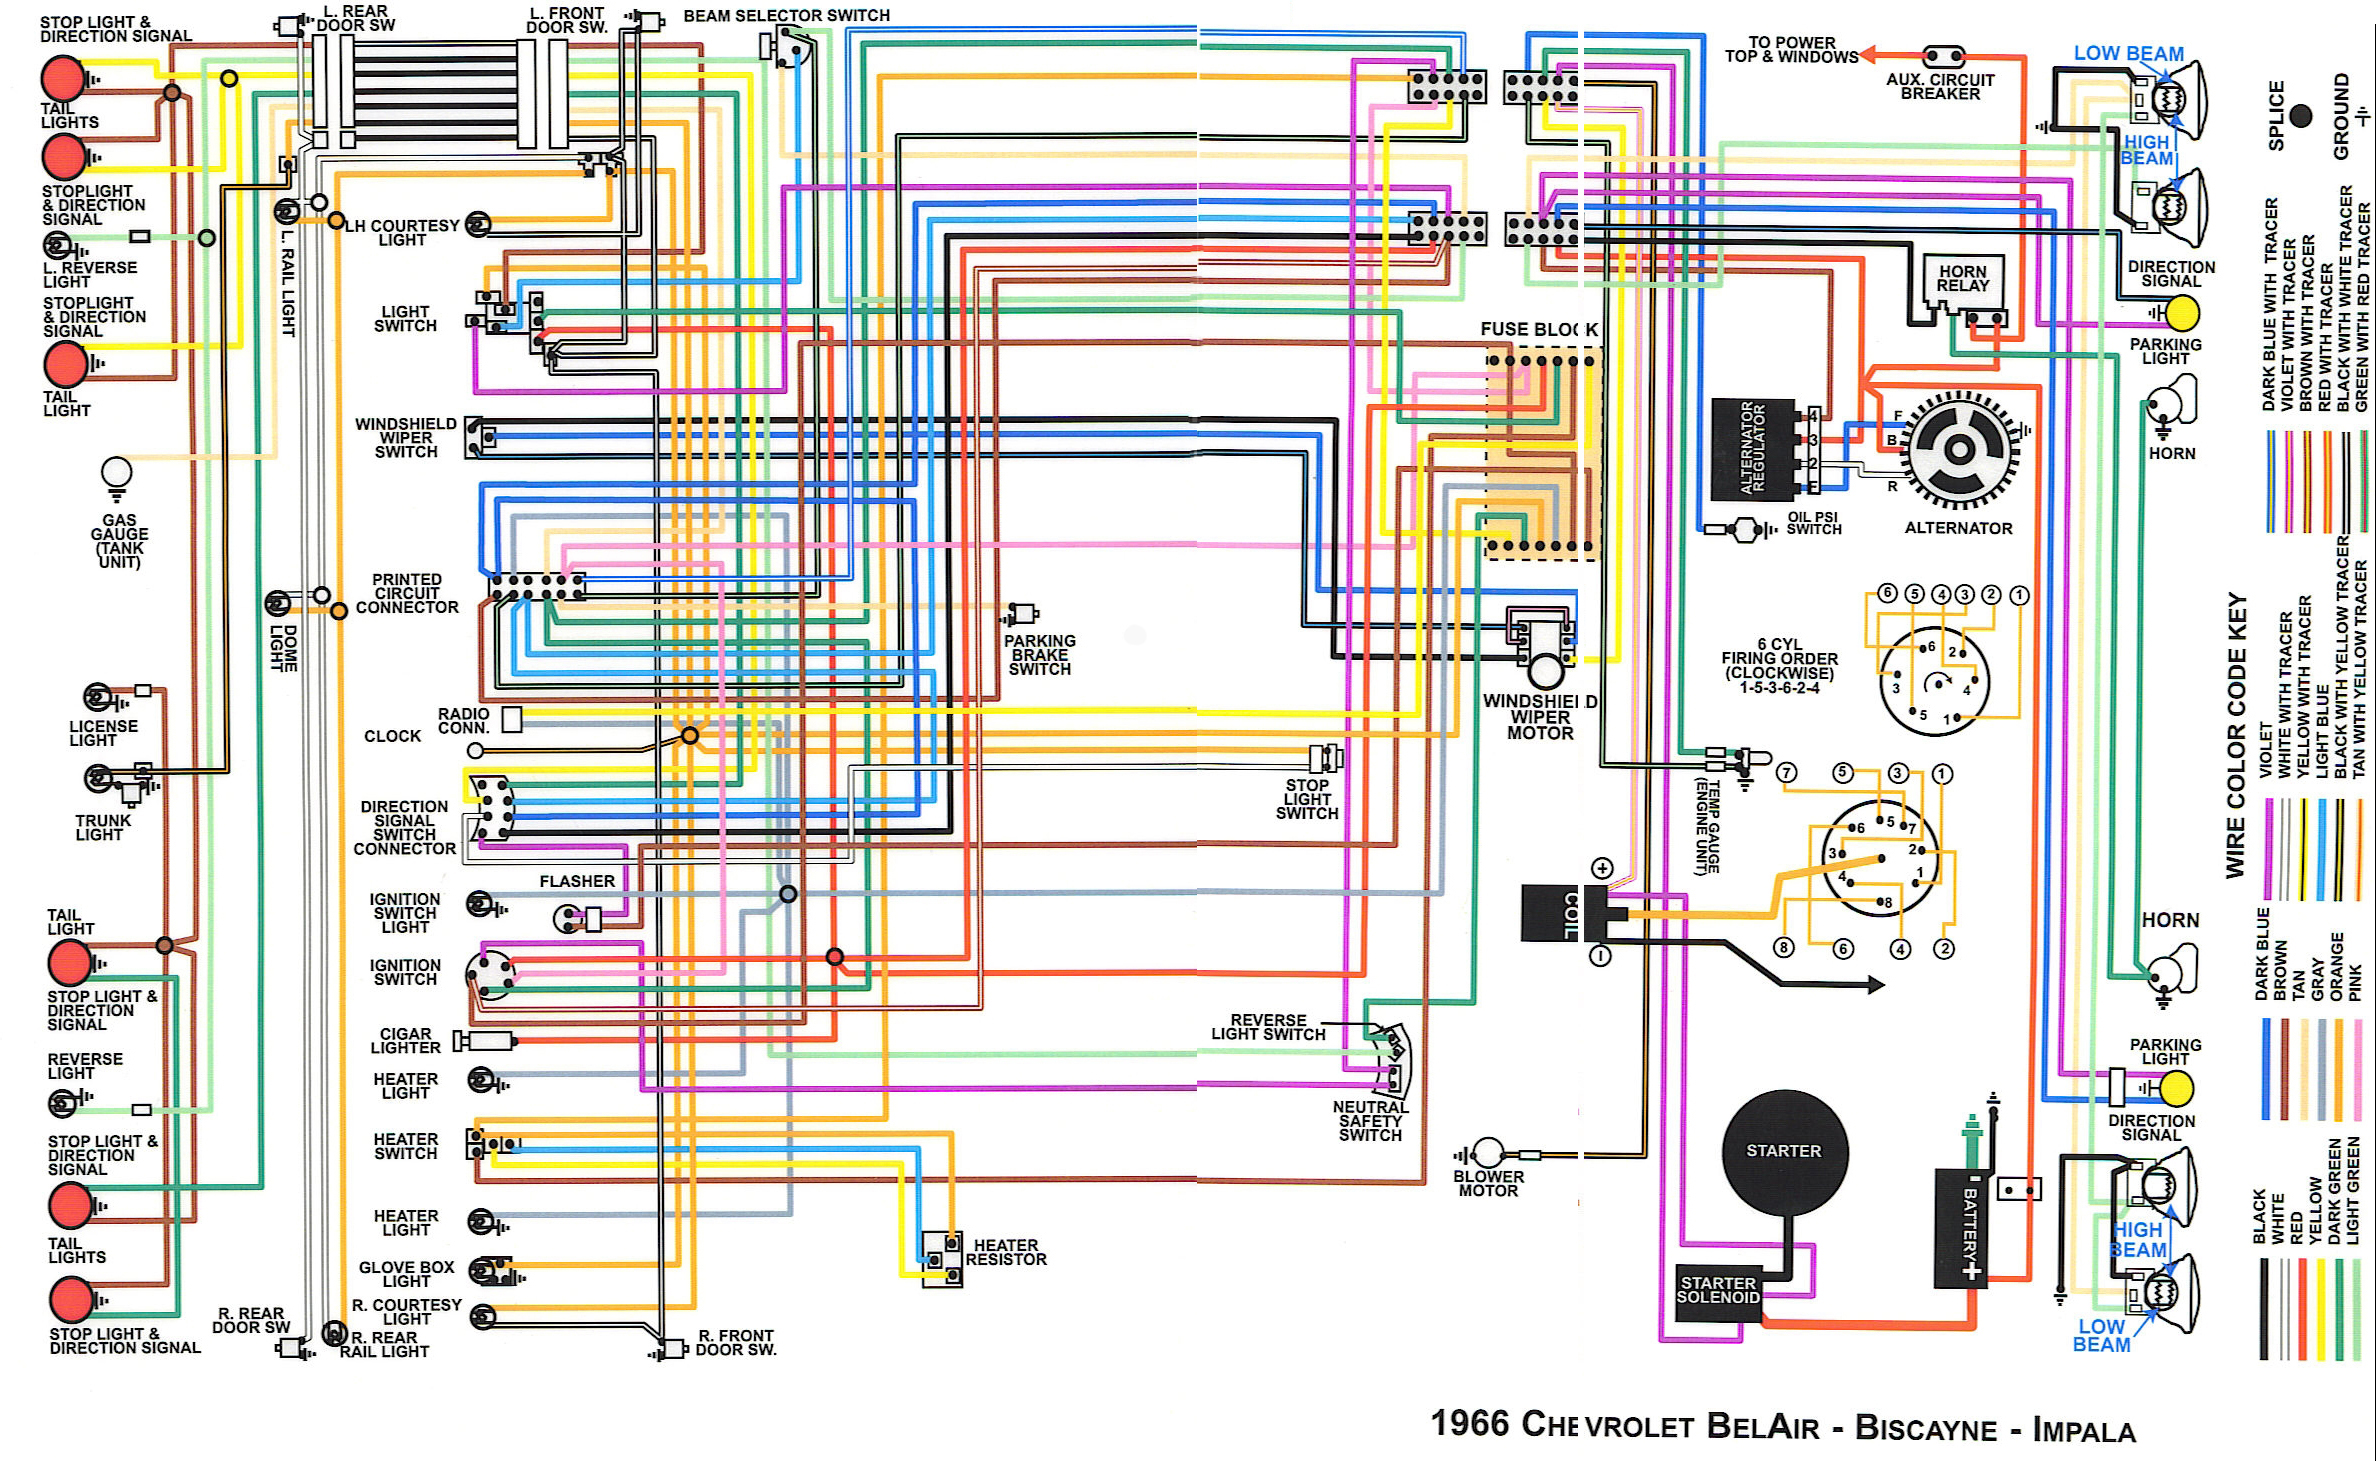 wd 1971 corvette wiring diagram 1981 corvette stereo wiring diagram 1966 chevelle wiring diagram at creativeand.co